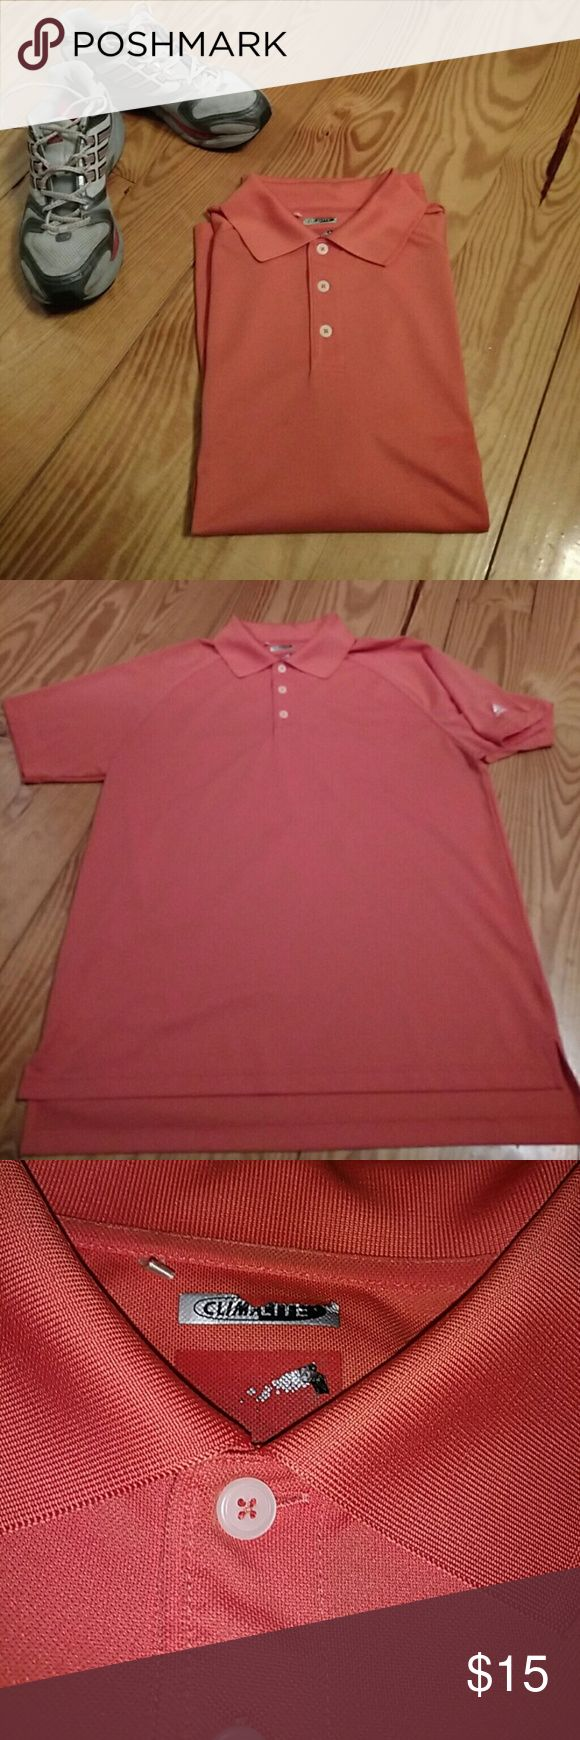 ADIDAS Climalite Polo Orange Adidas Polo. Good condition, except for some wearing to the inside collar area where the inside tags have worn off. DRI FIT. Adidas Shirts Polos